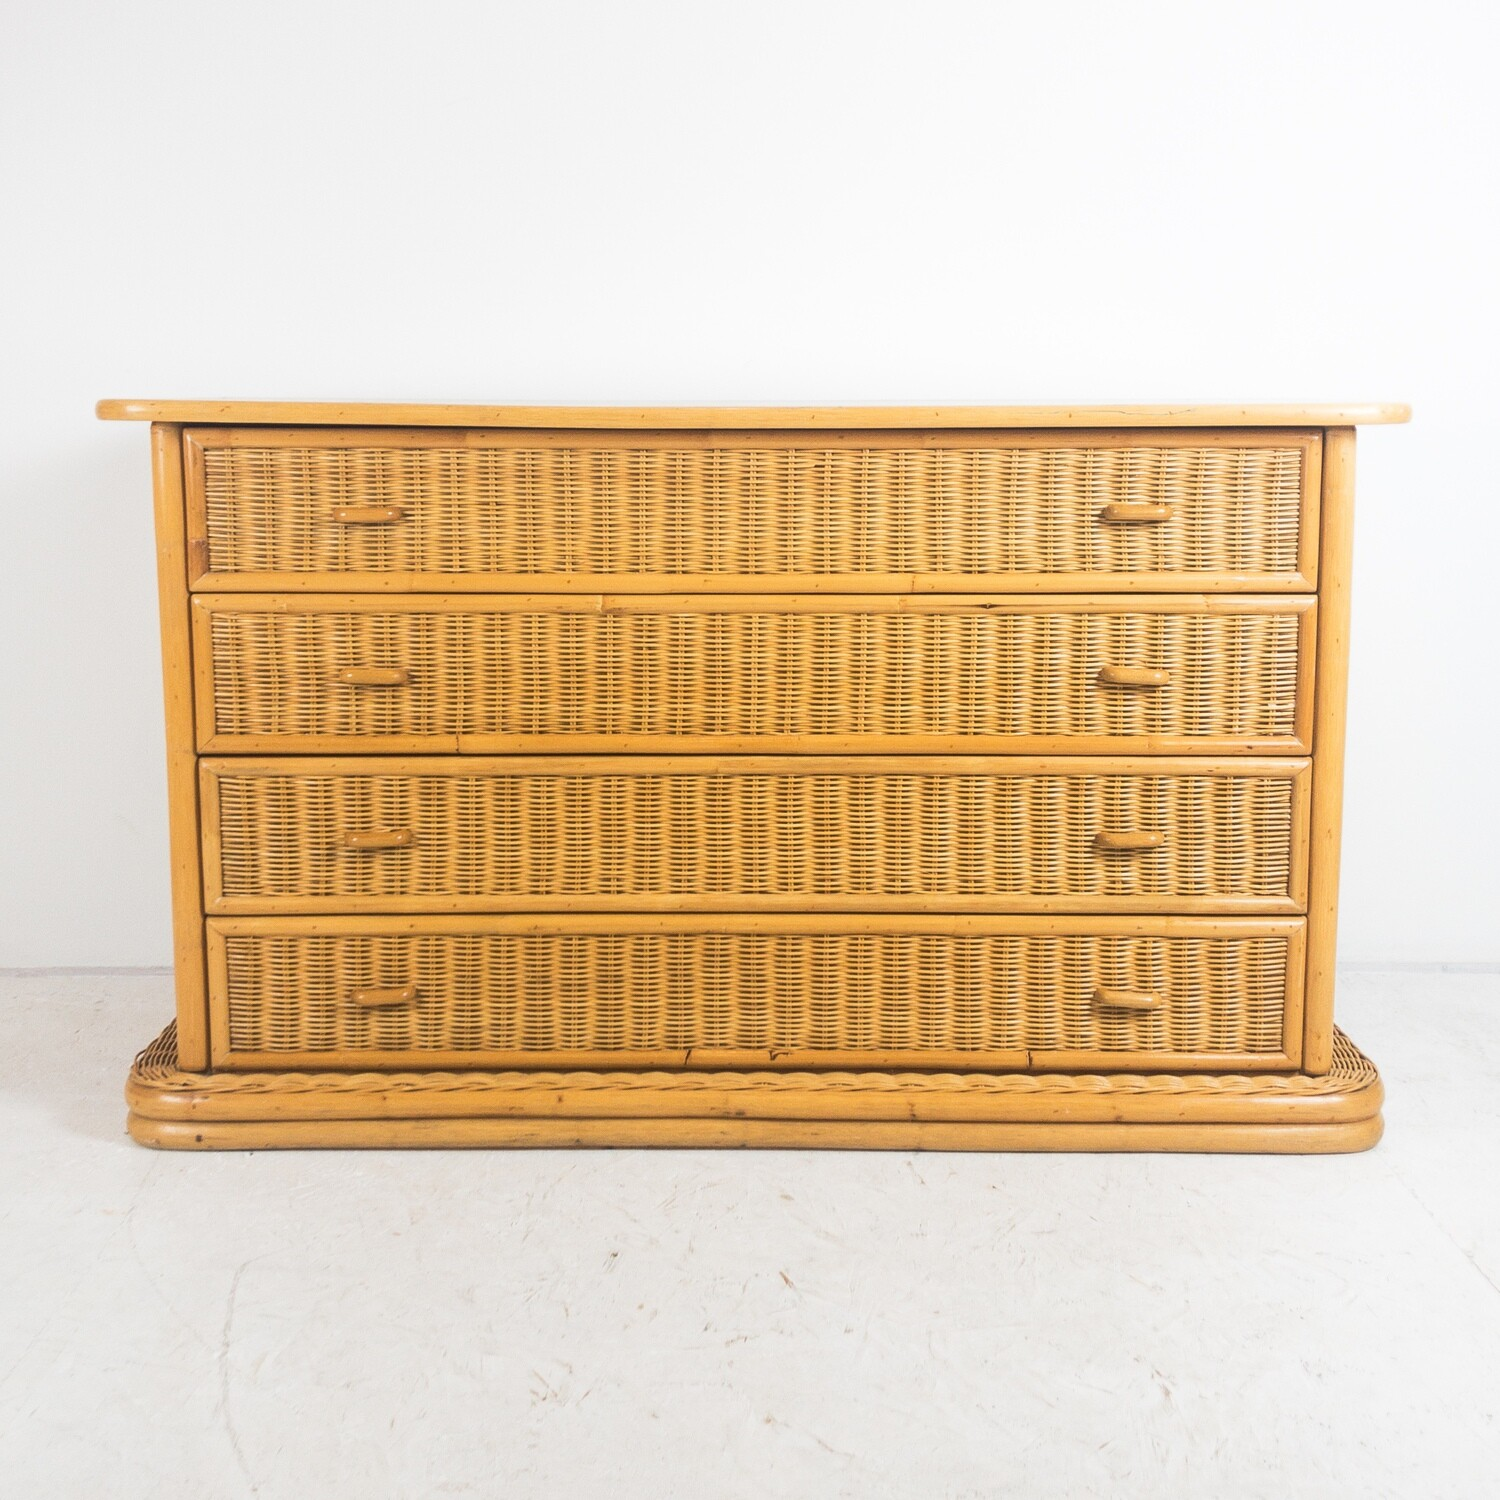 Chest of drawers in bamboo and wicker, Italy 1970s